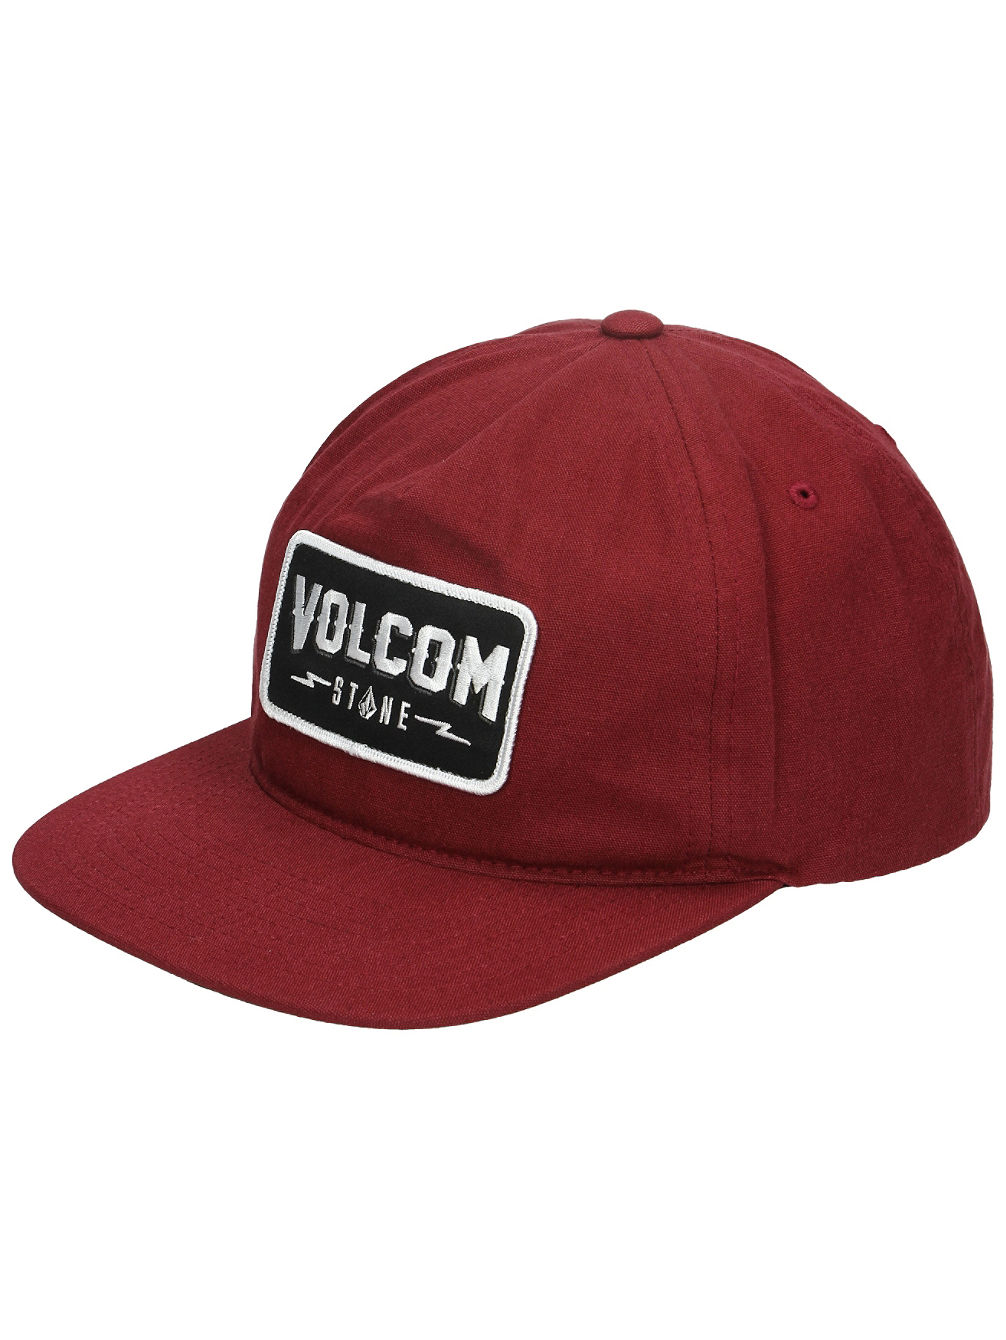 18a739e09bf71 Buy Volcom Badger Cap online at Blue Tomato